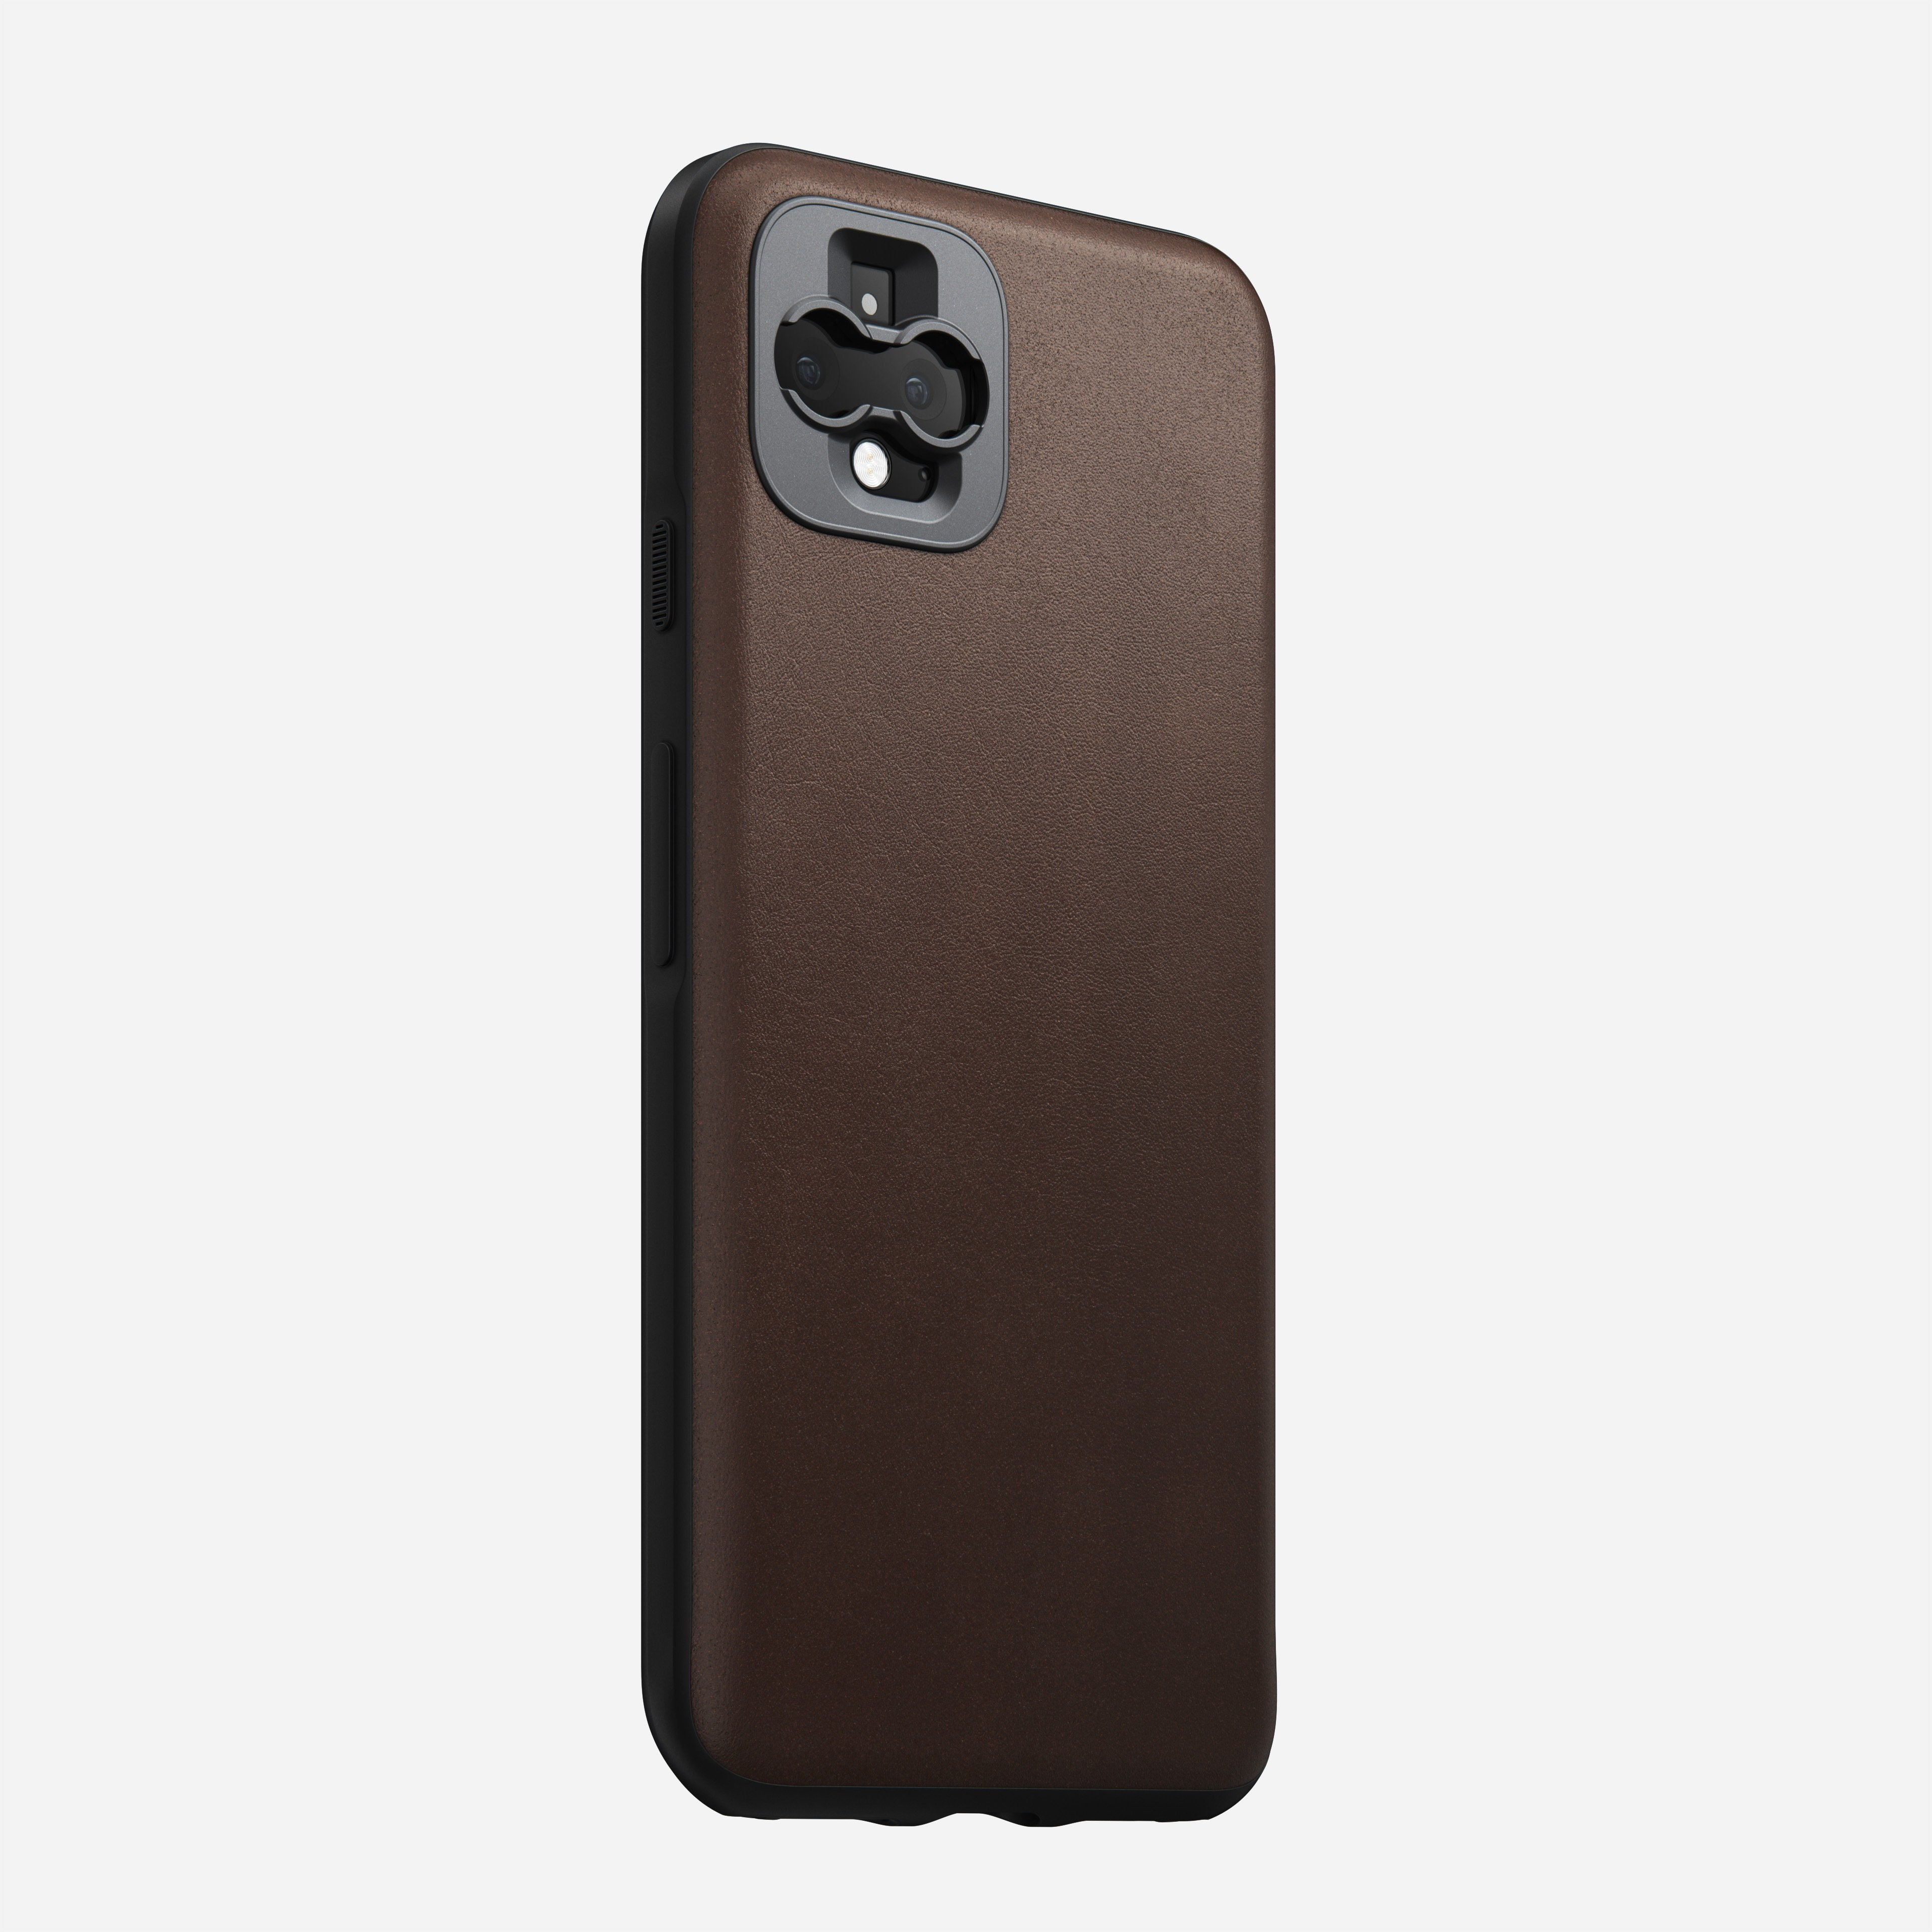 Rugged case rustic brown moment pixel 4